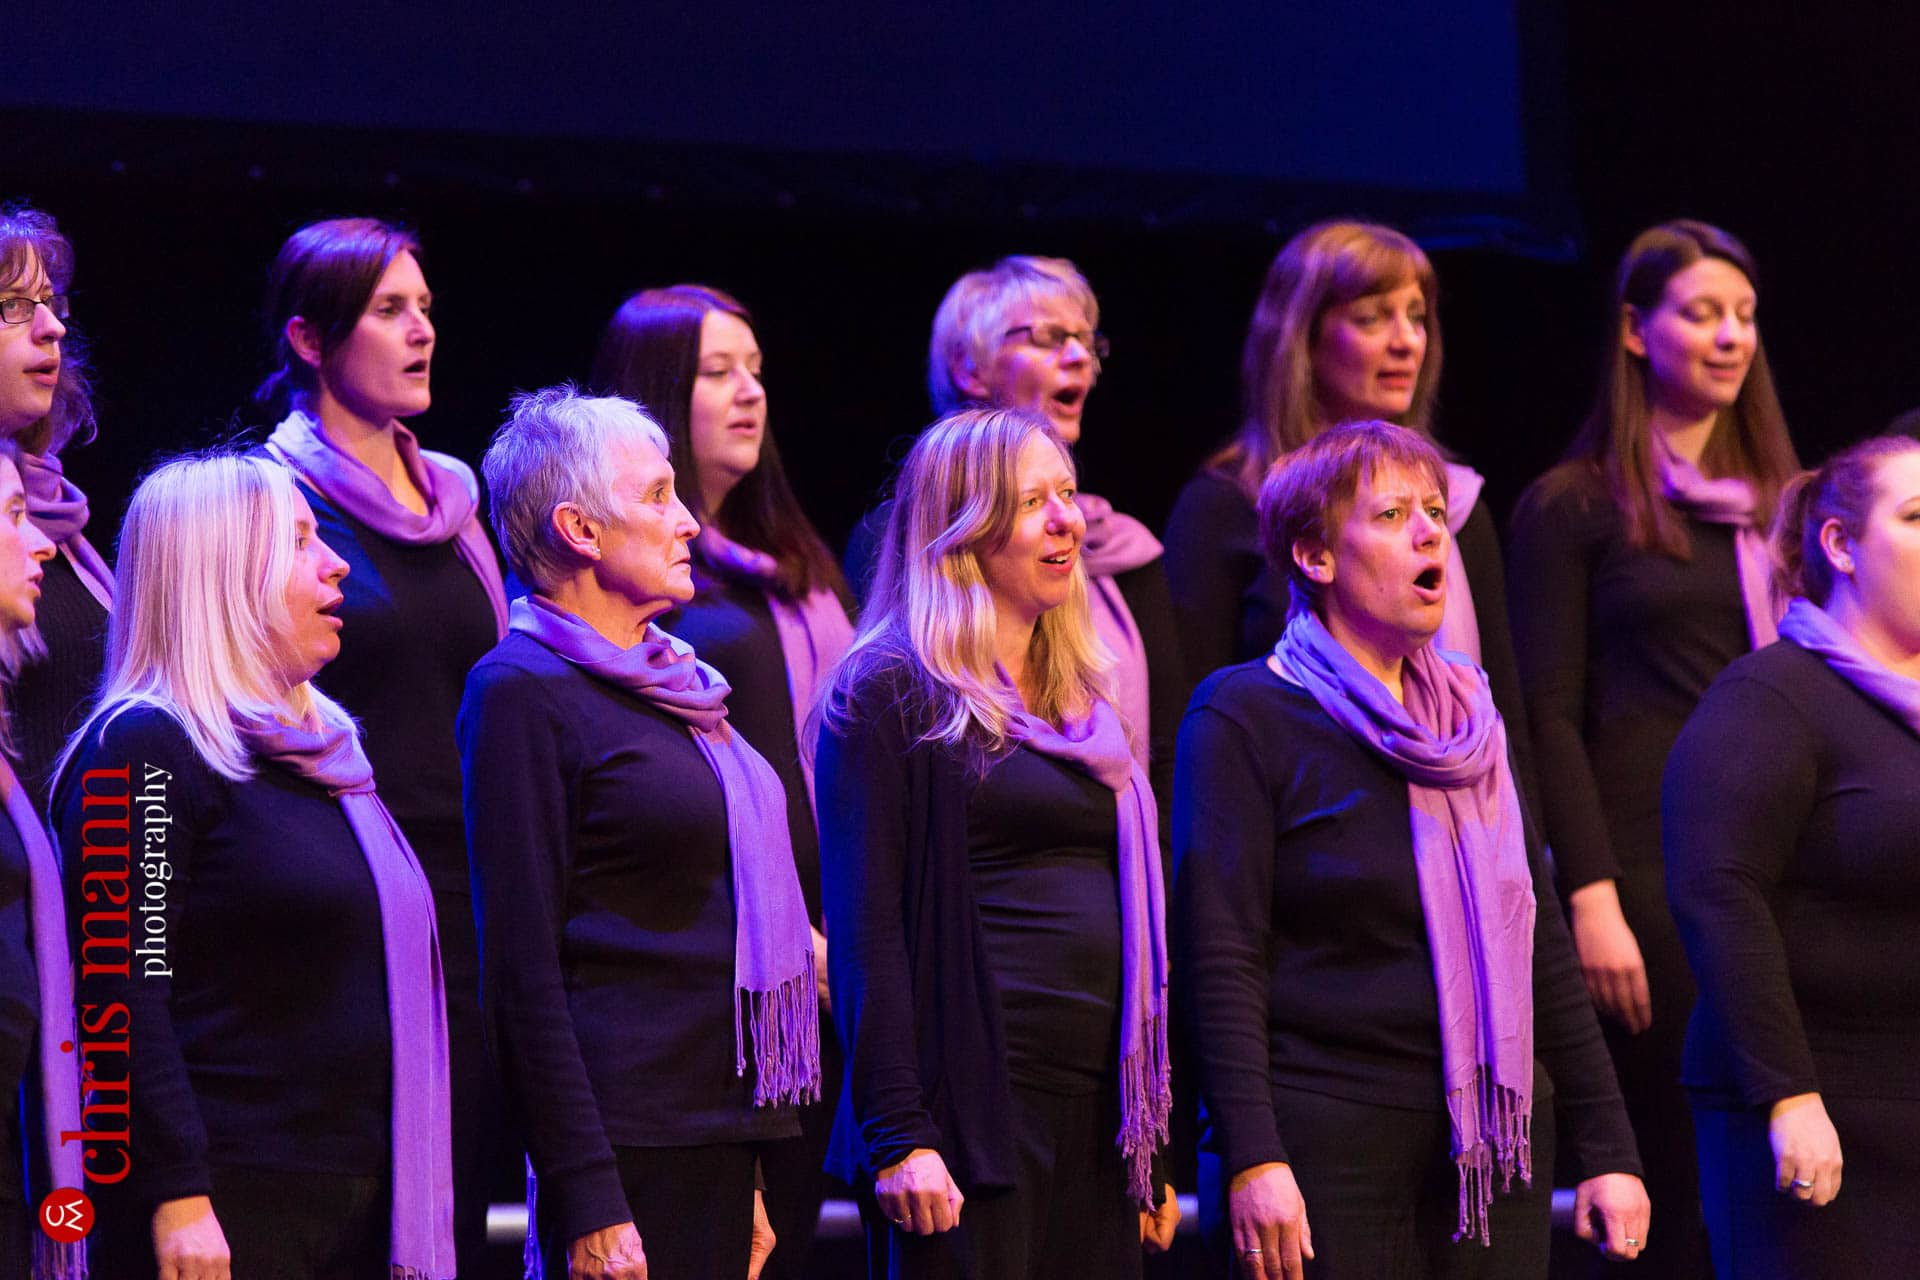 Songbirds choir performing at Choiroke 2016 concert Dorking Halls